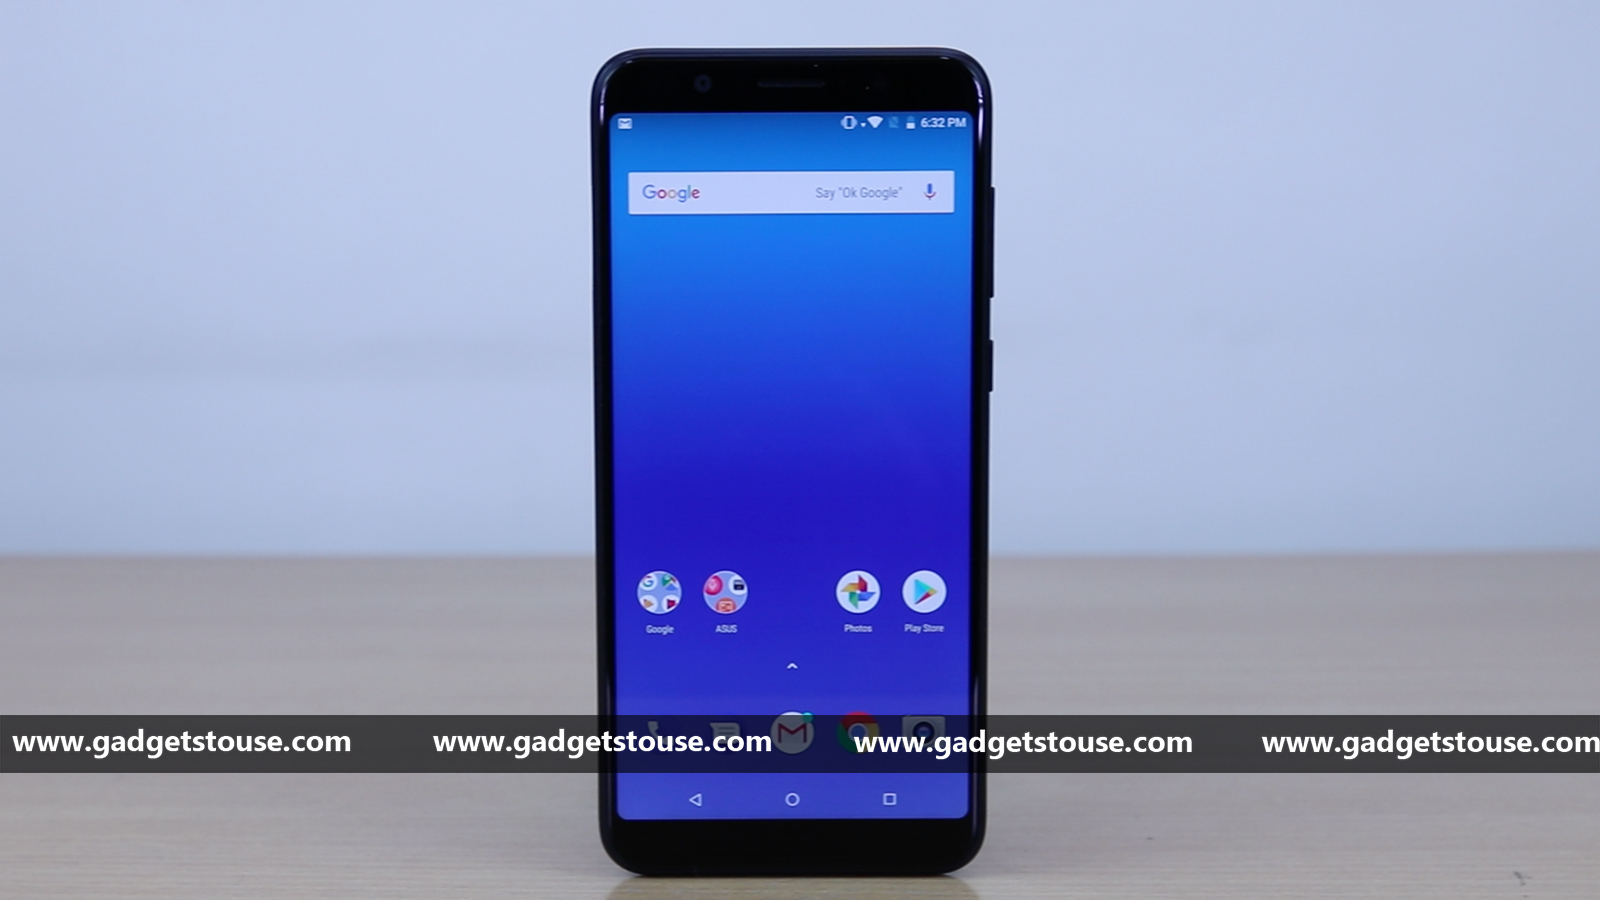 Asus Zenfone Max Pro M1 FAQs, pros, cons, user queries and